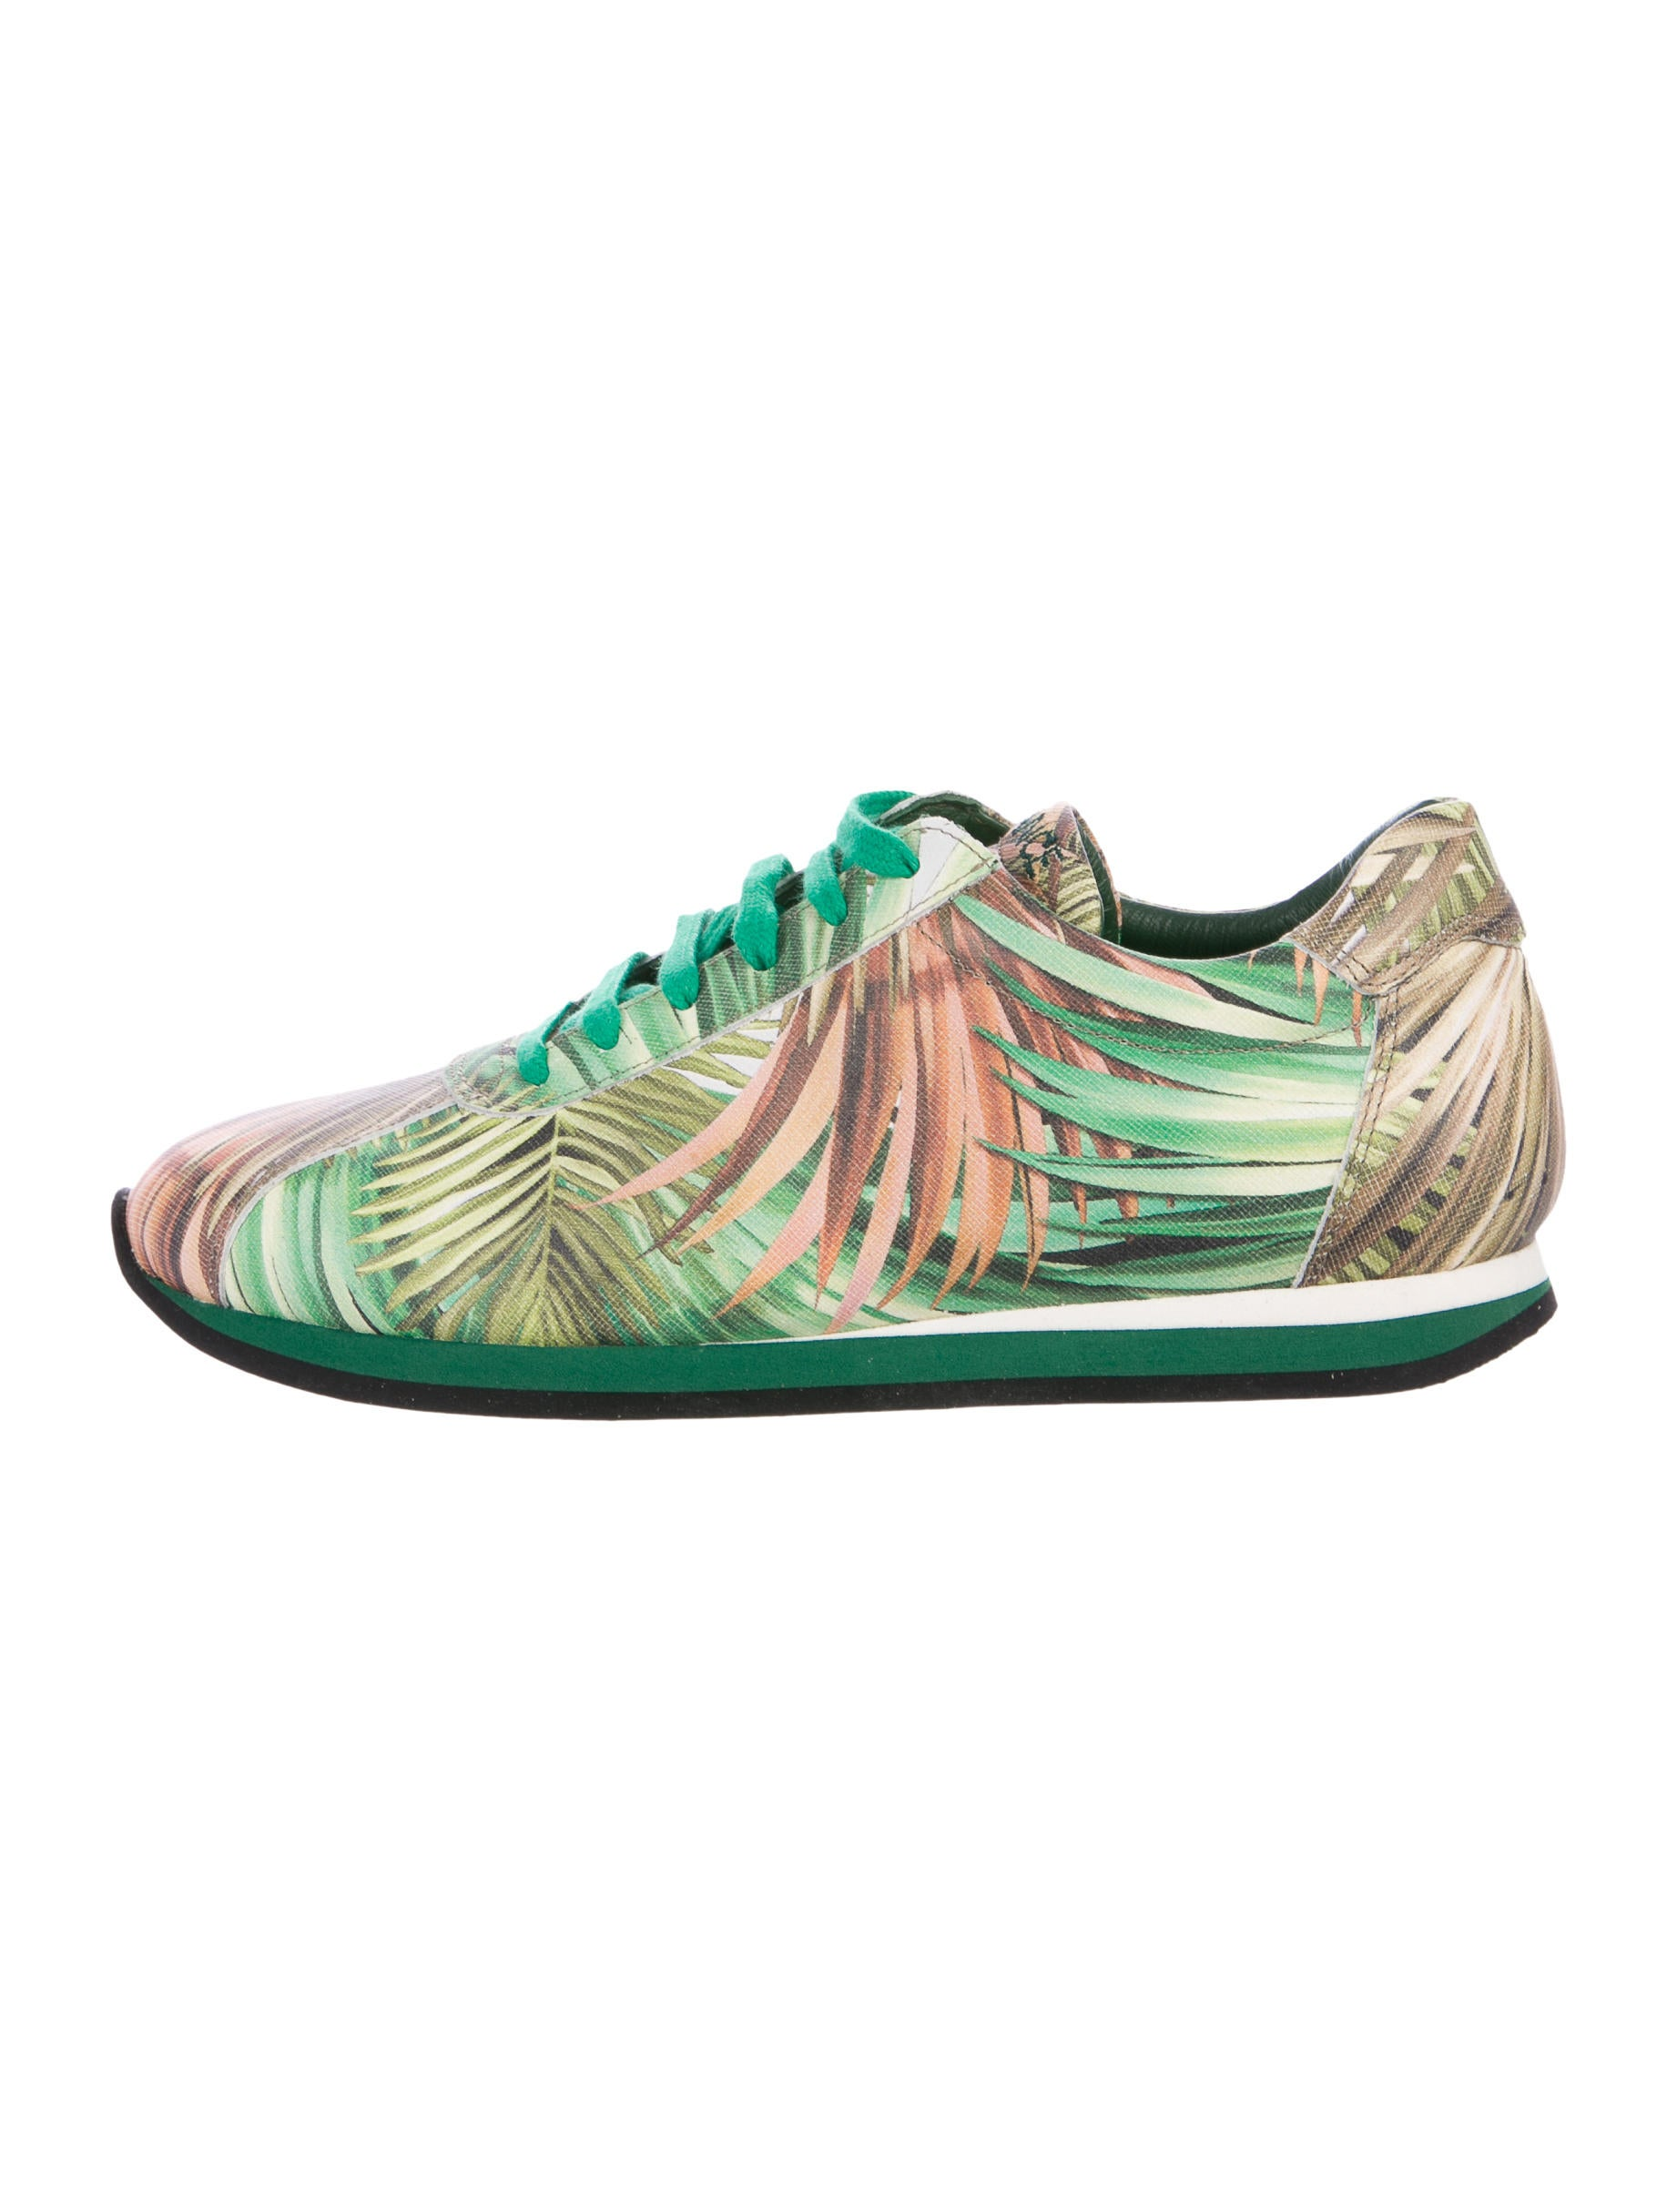 buy cheap popular Freelance Printed Low-Top Sneakers get to buy cheap online best prices for sale cheap pay with paypal 0E9nTCLU30